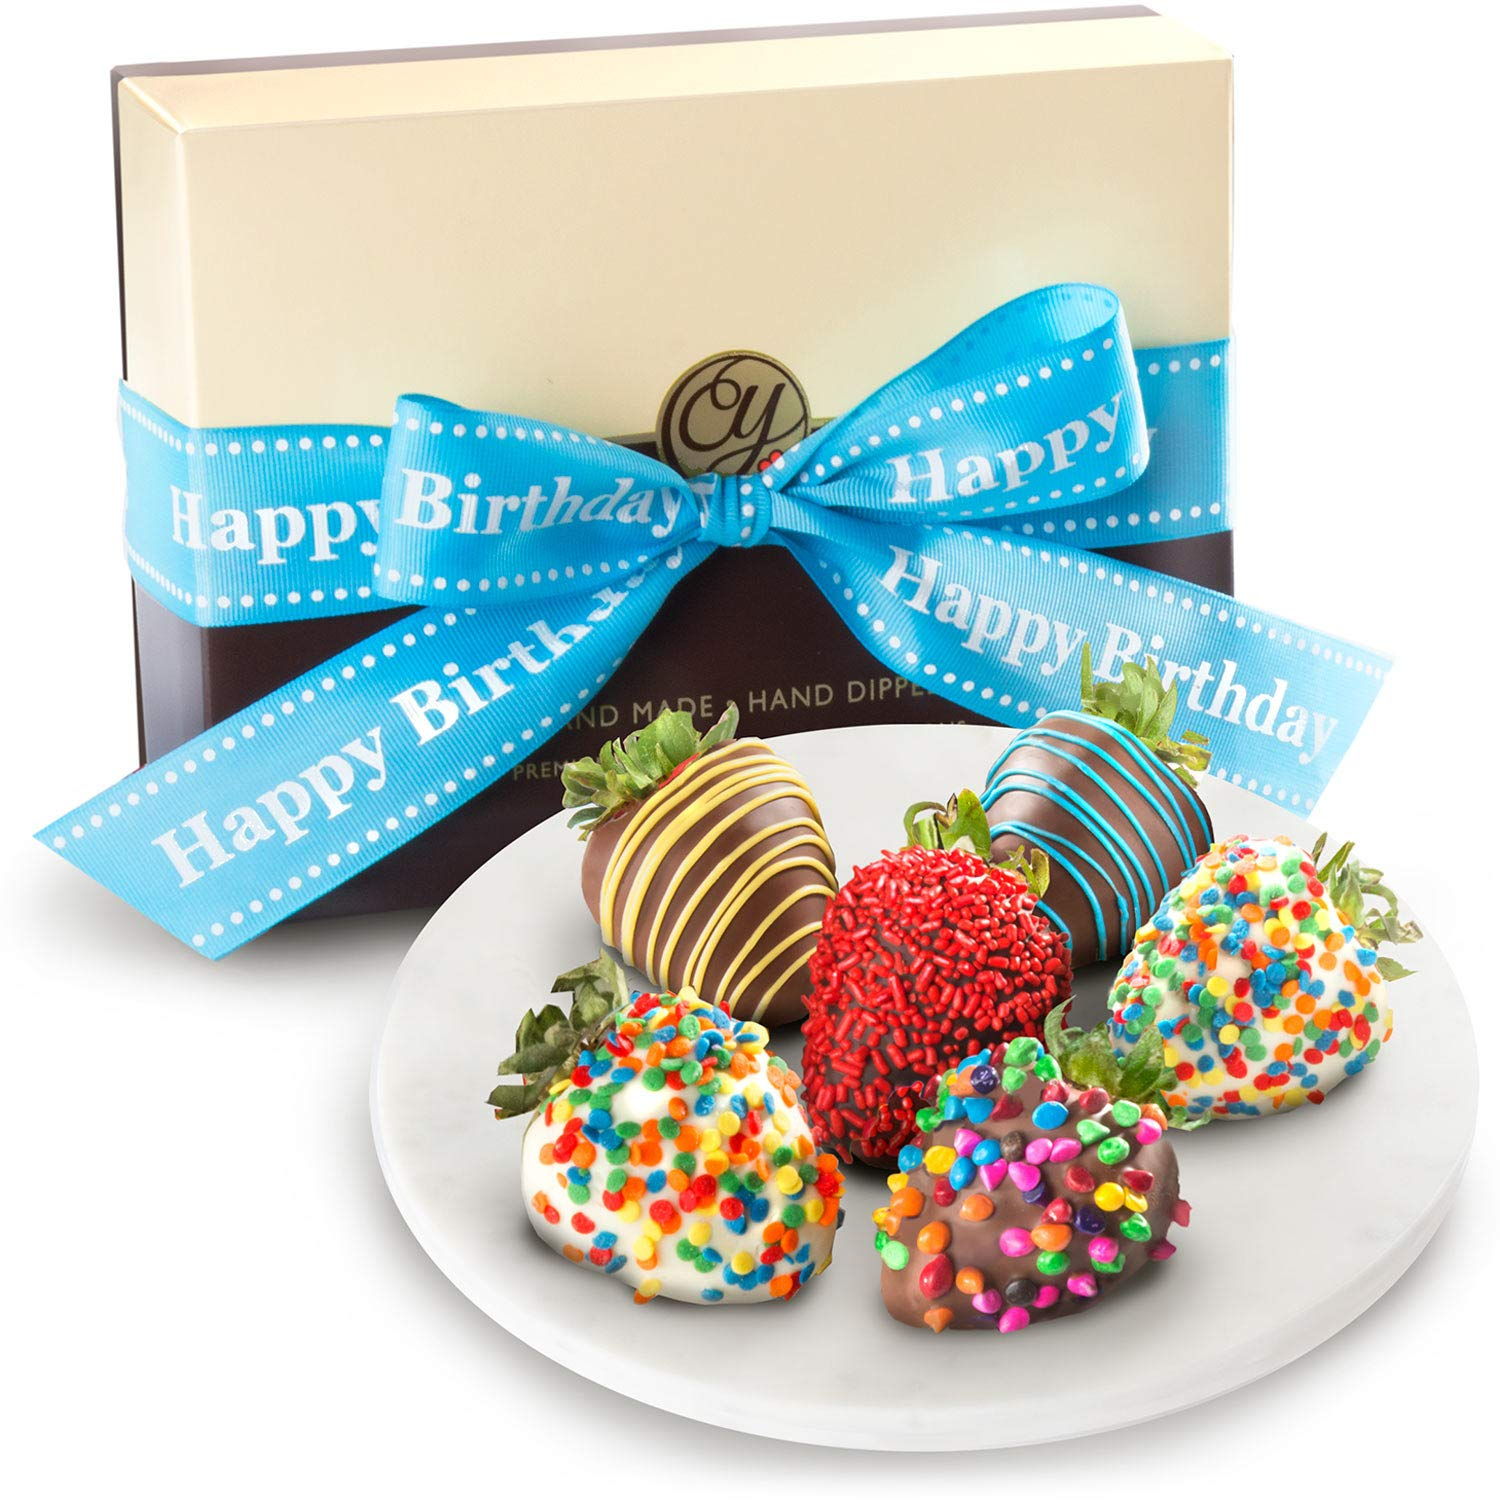 6 Happy Birthday Chocolate Covered Strawberries